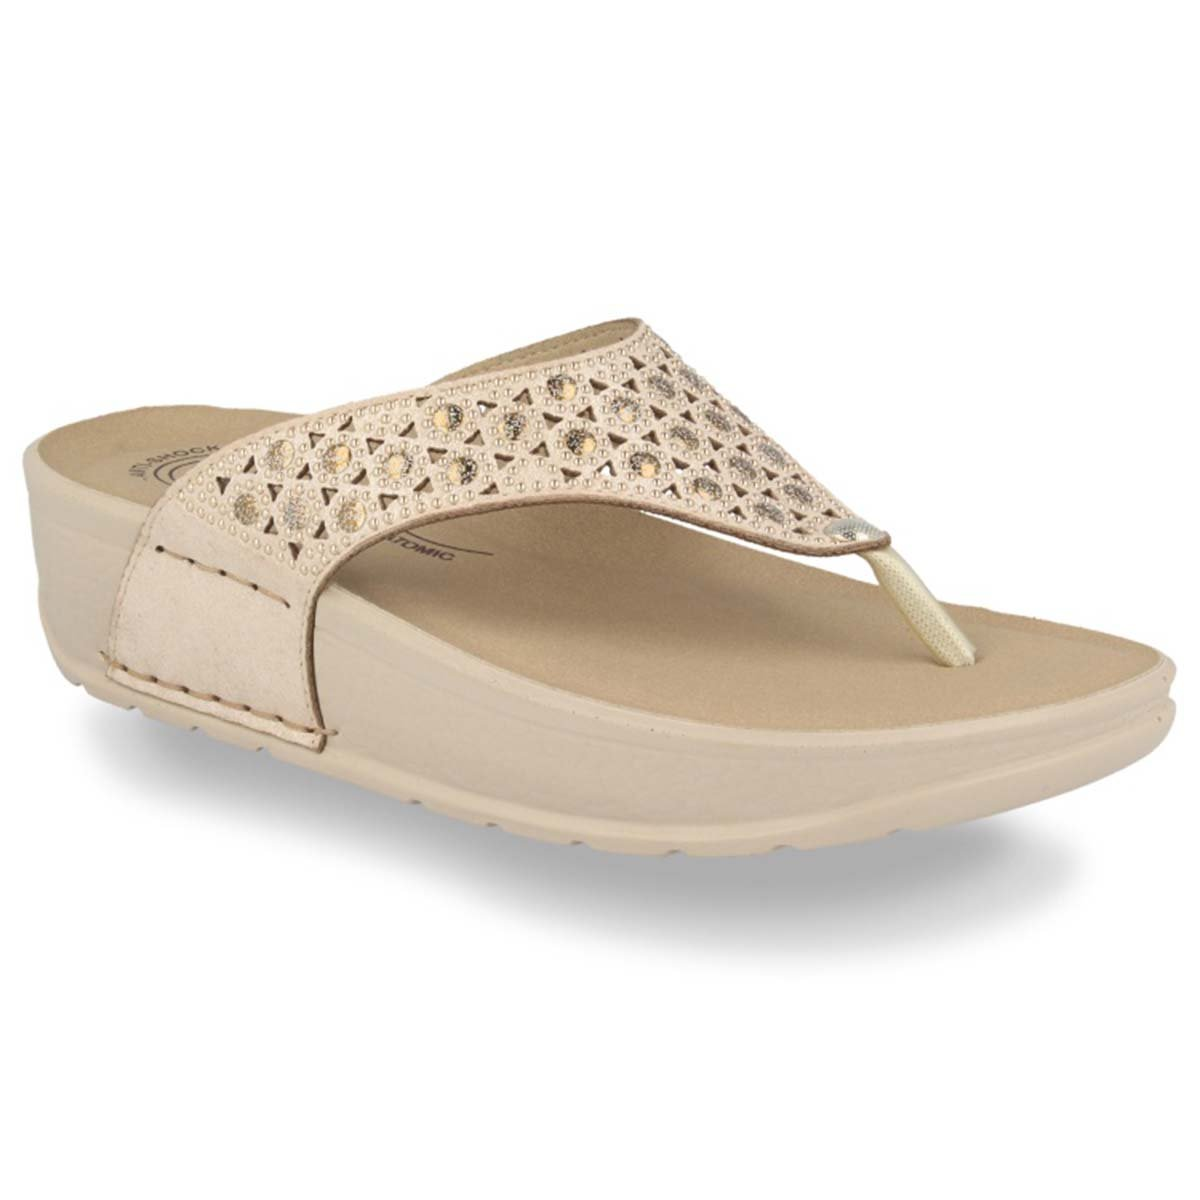 See photos Synthetic Woman Slipper Beige (38C44A2)